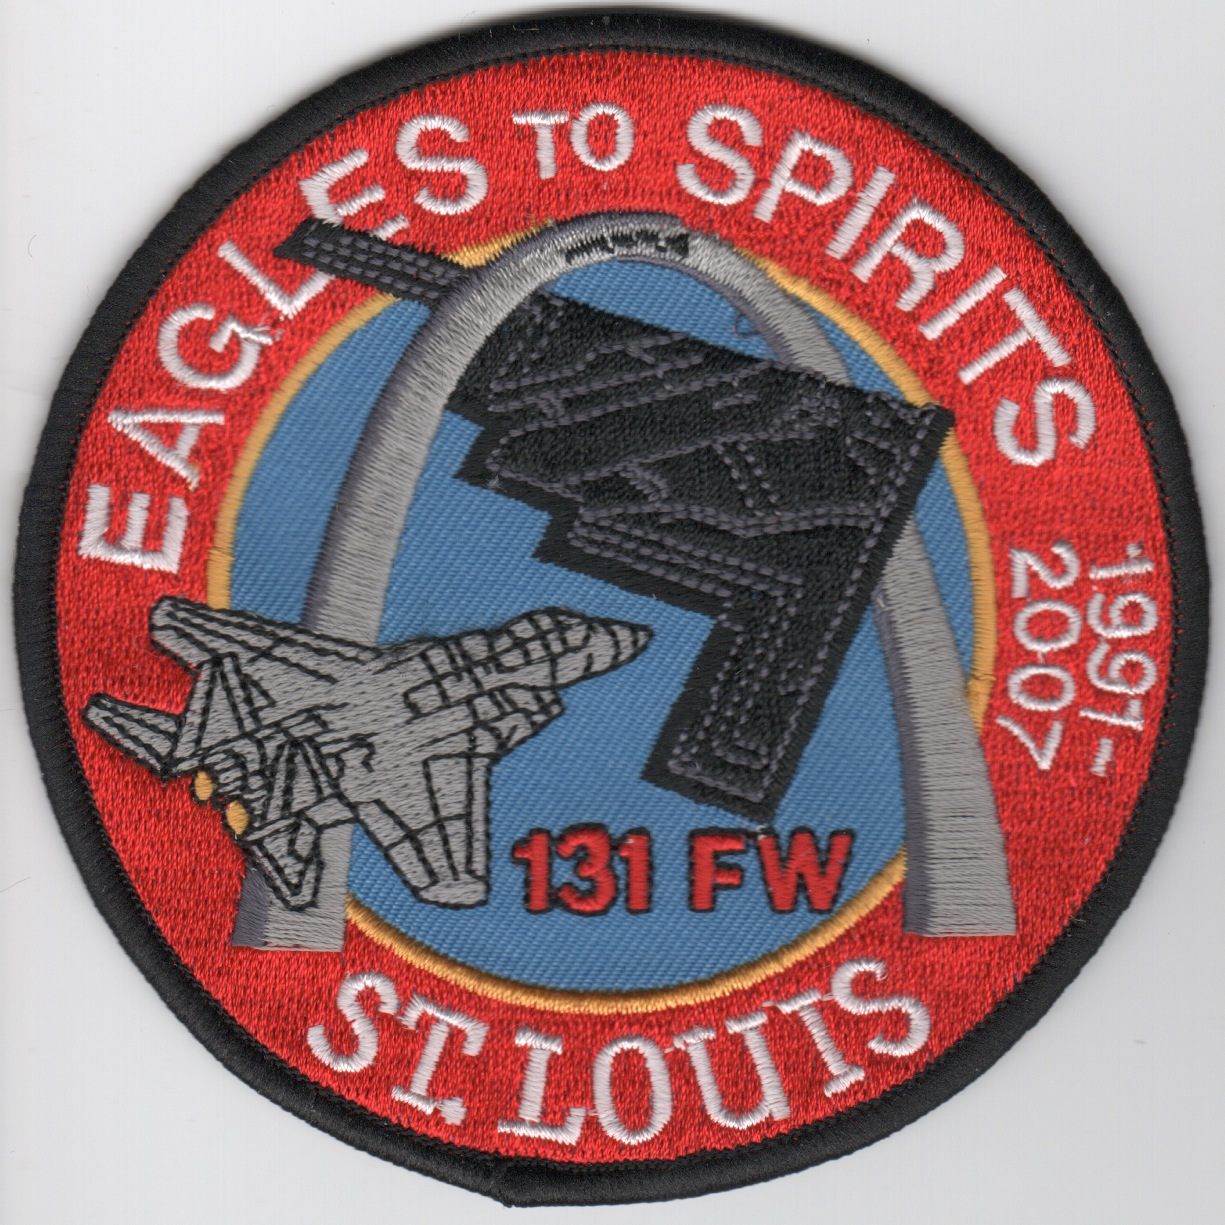 131FW 'Eagles-to-Spirits' Patch